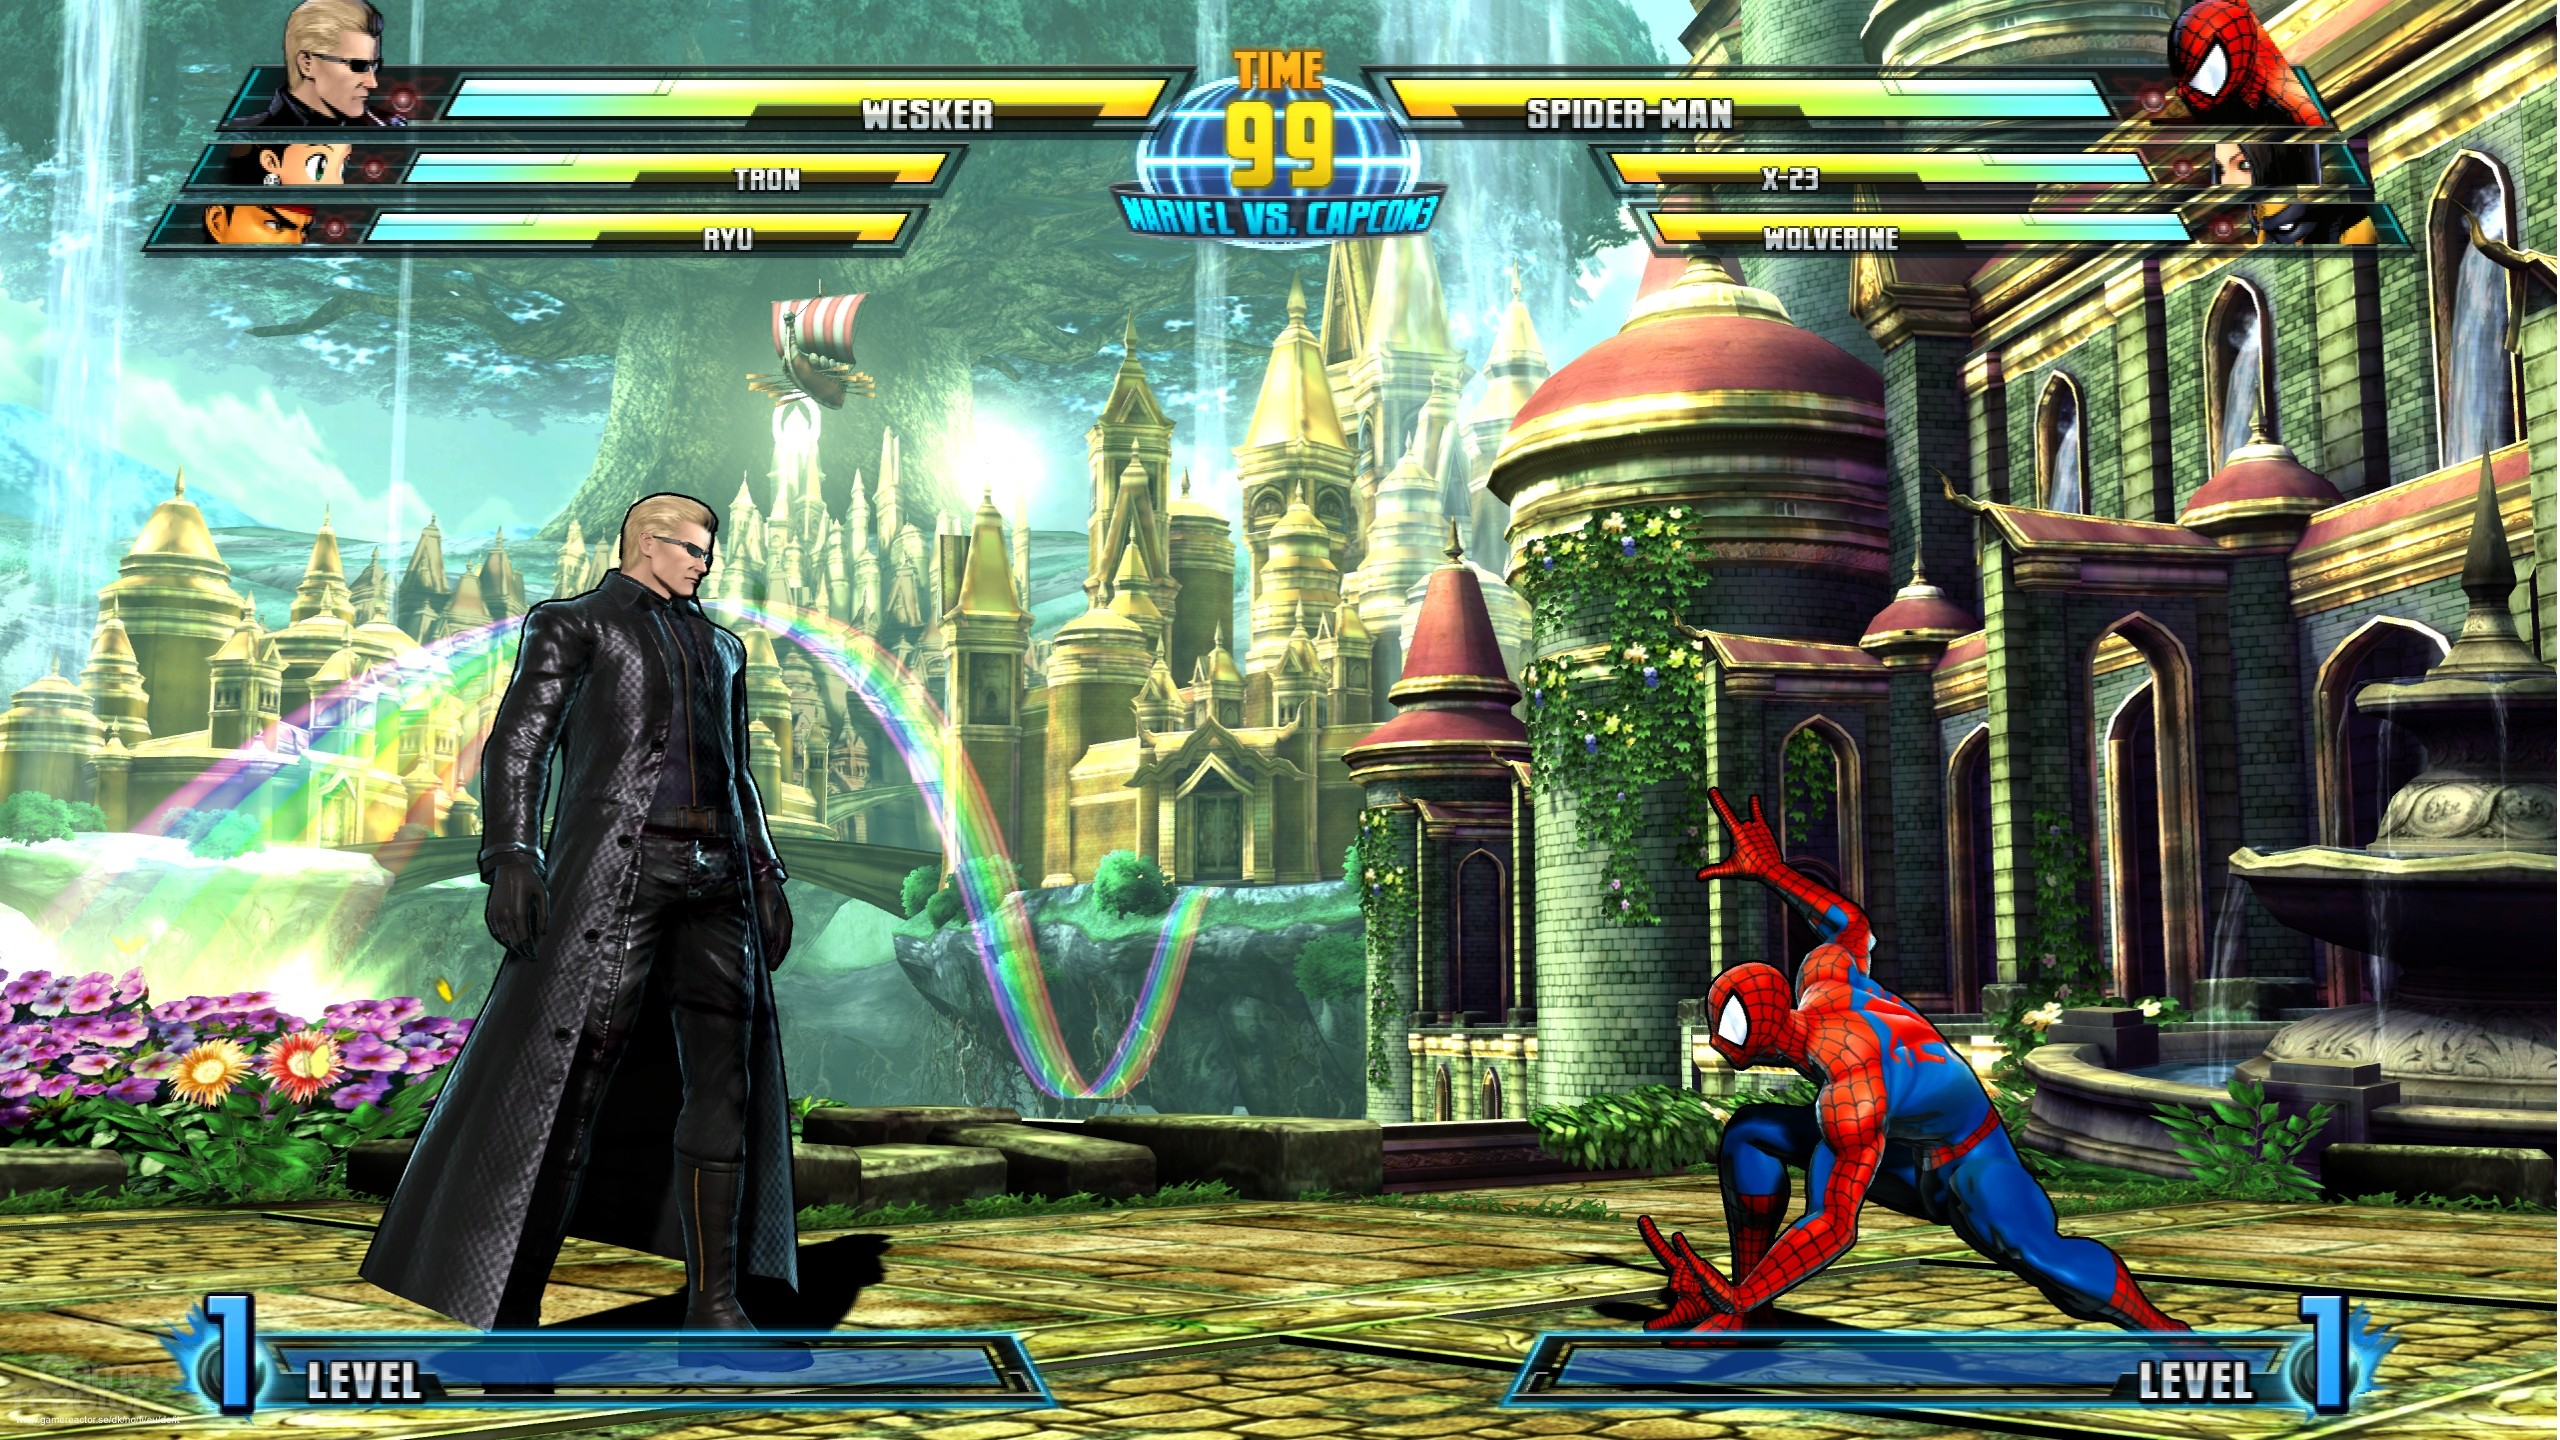 Marvel Vs Capcom 3: The Secrets - Marvel vs Capcom 3: Fate of Two